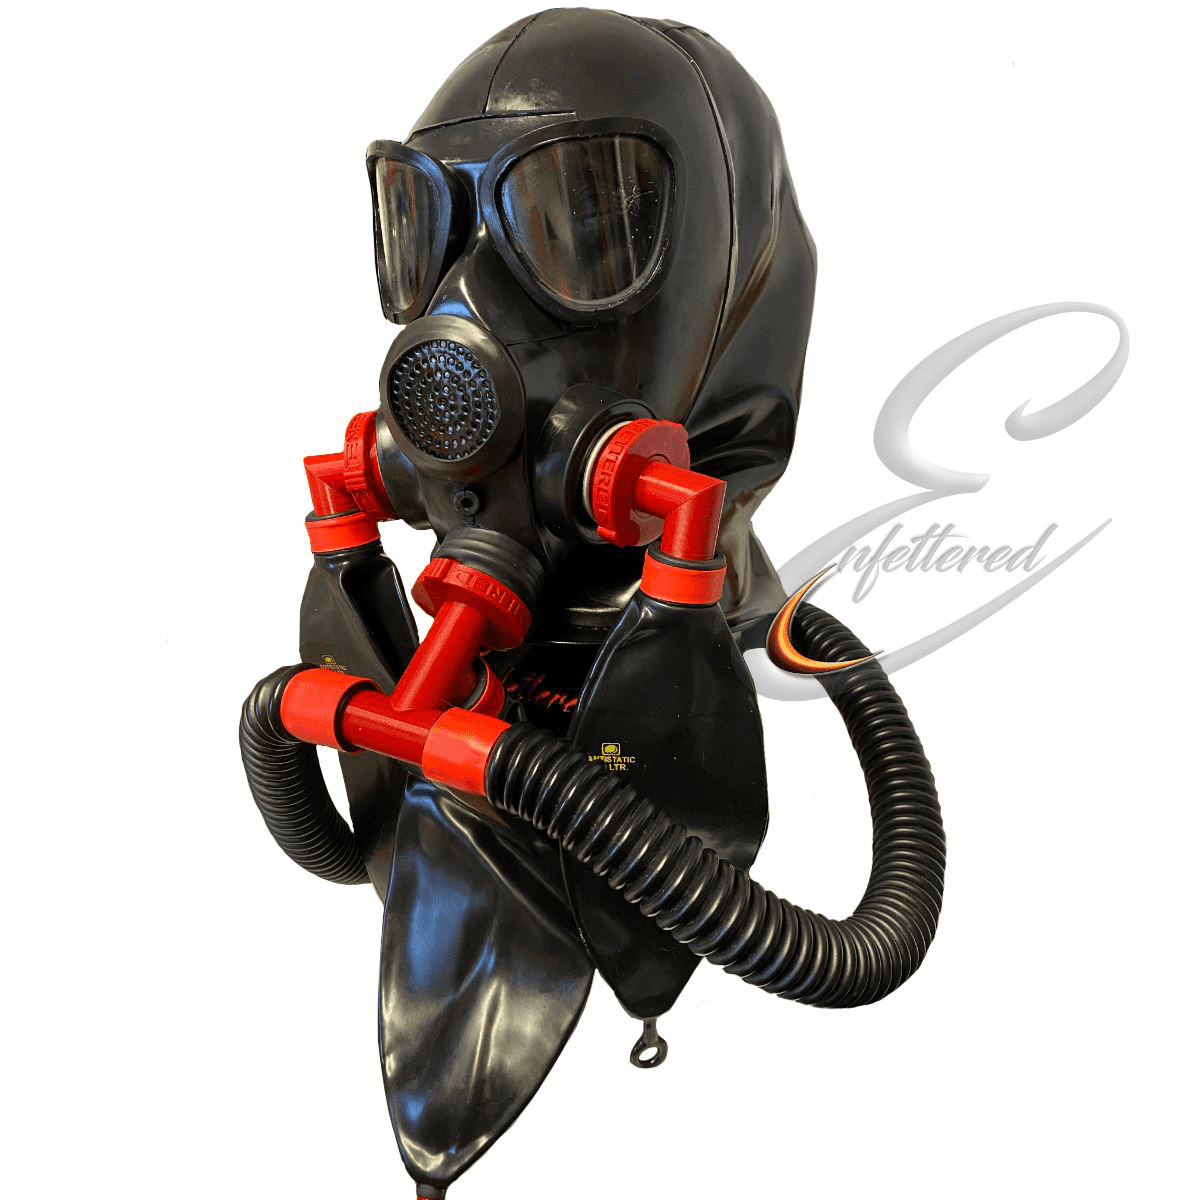 Enfettered Gas Mask Hood with Removable Reverse Ring Tube System